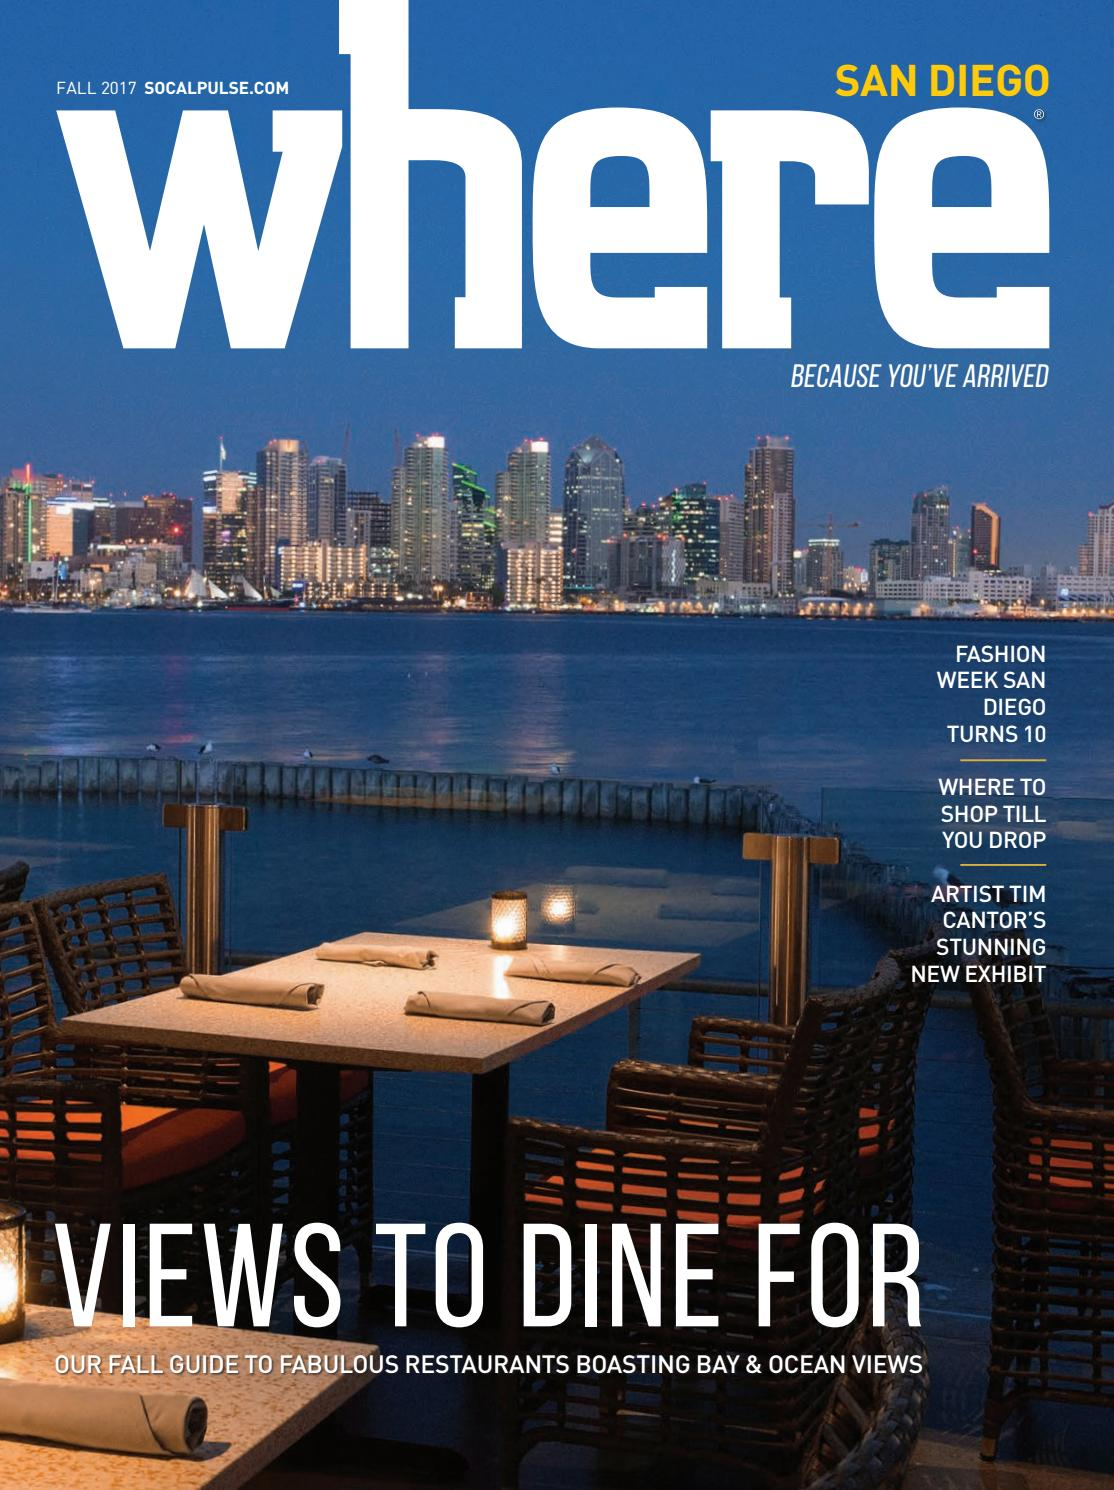 Vigilucci's Cucina Italiana Encinitas Where San Diego Magazine Fall 2017 By Socalmedia Issuu